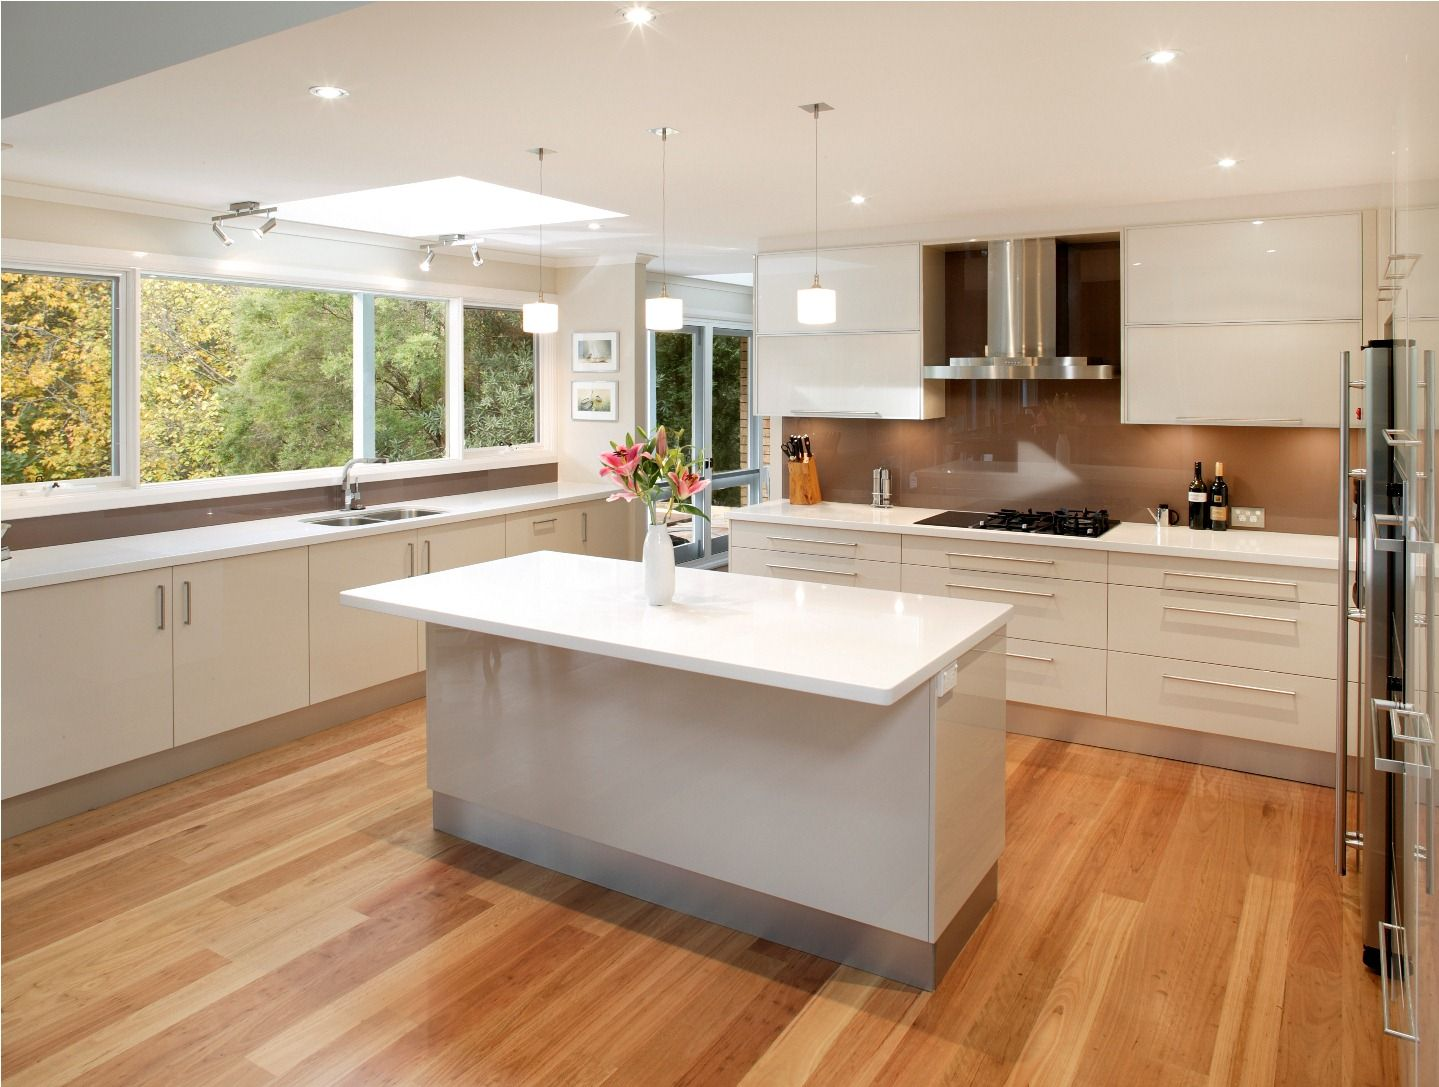 Impact Remodeling Is The Top Phoenix Kitchen Remodel Contractor Of Entrancing Kitchen Designs Modern Design Inspiration